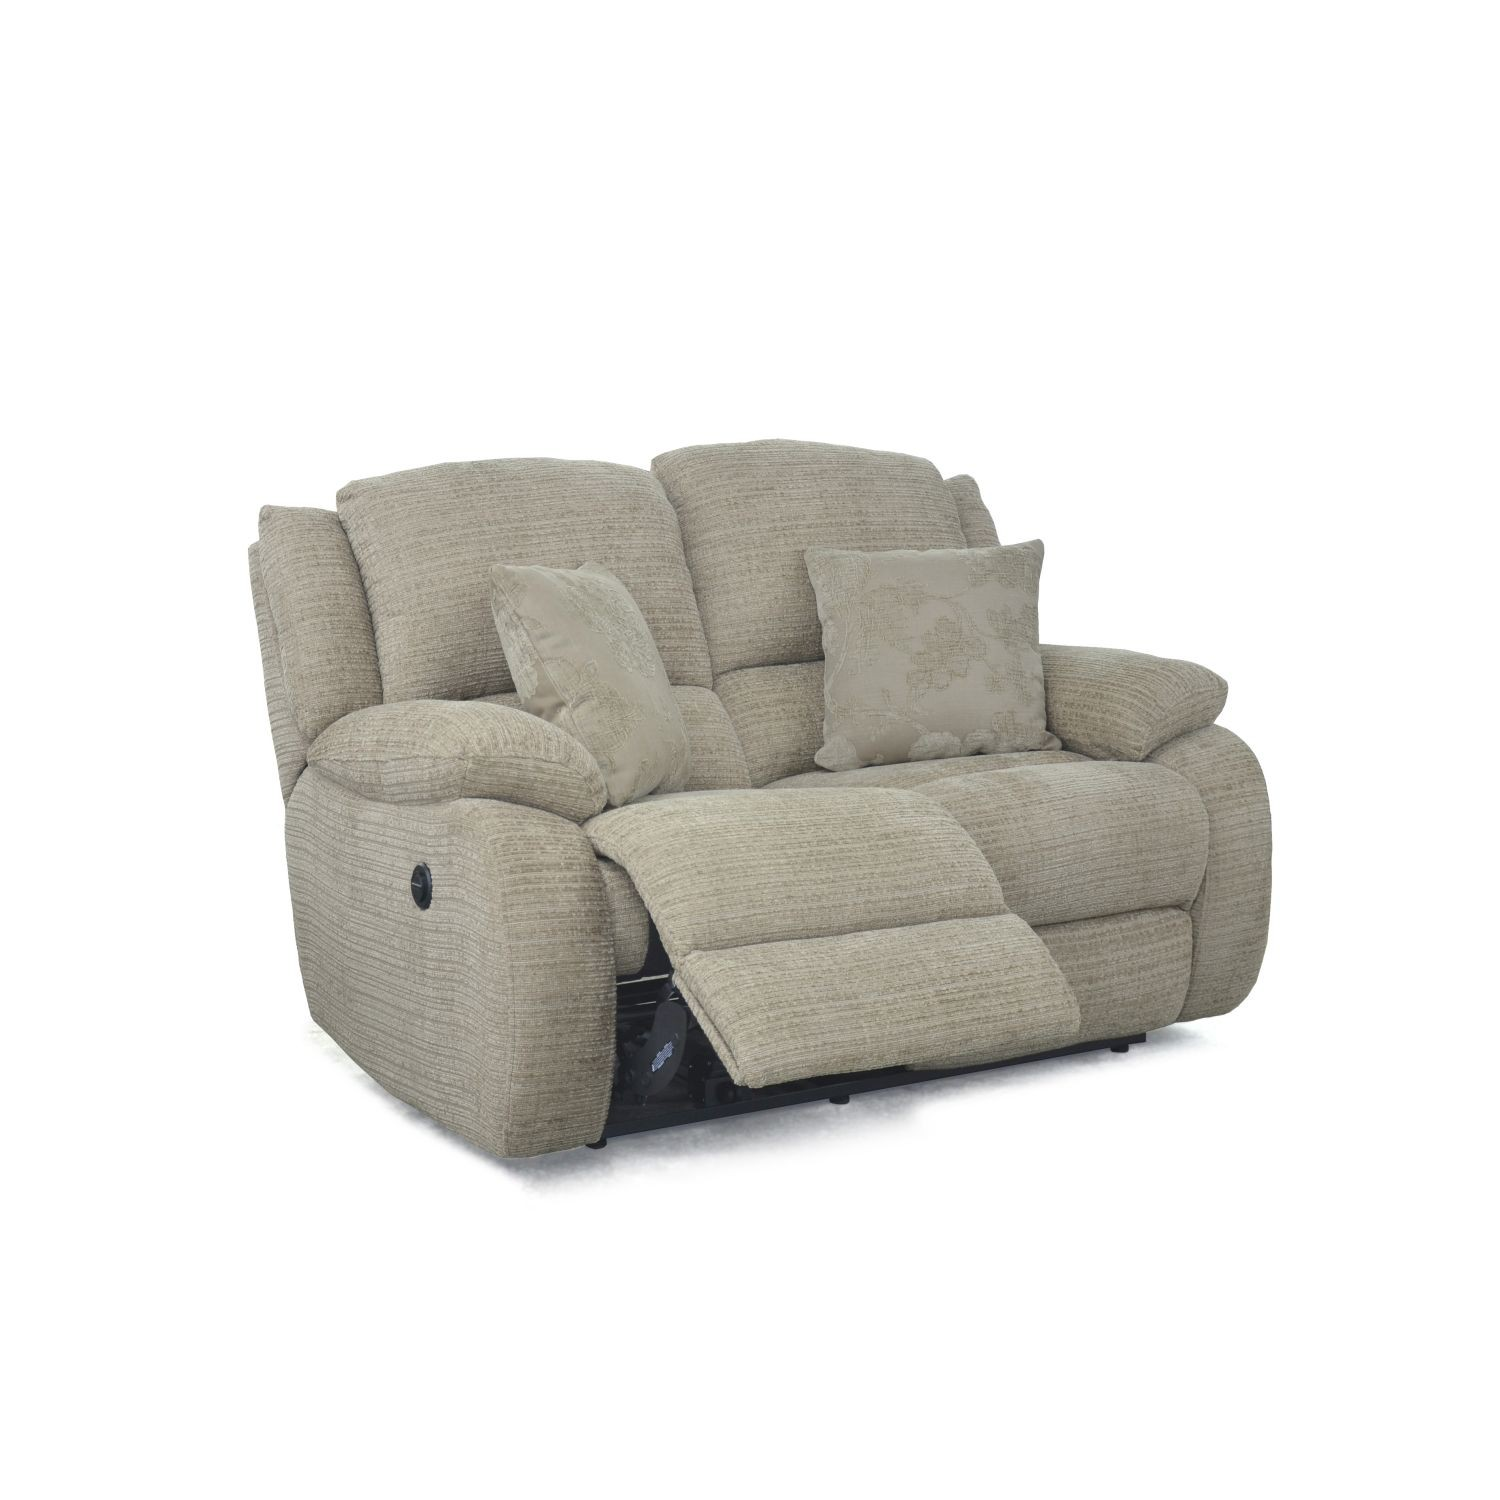 Power Recliner Sofa further Fabric Sofas furthermore Casa Oscar 2 Seater Power Recliner Sofa further Power Recliner Sofa together with  on casa oscar 2 seater power recliner sofa